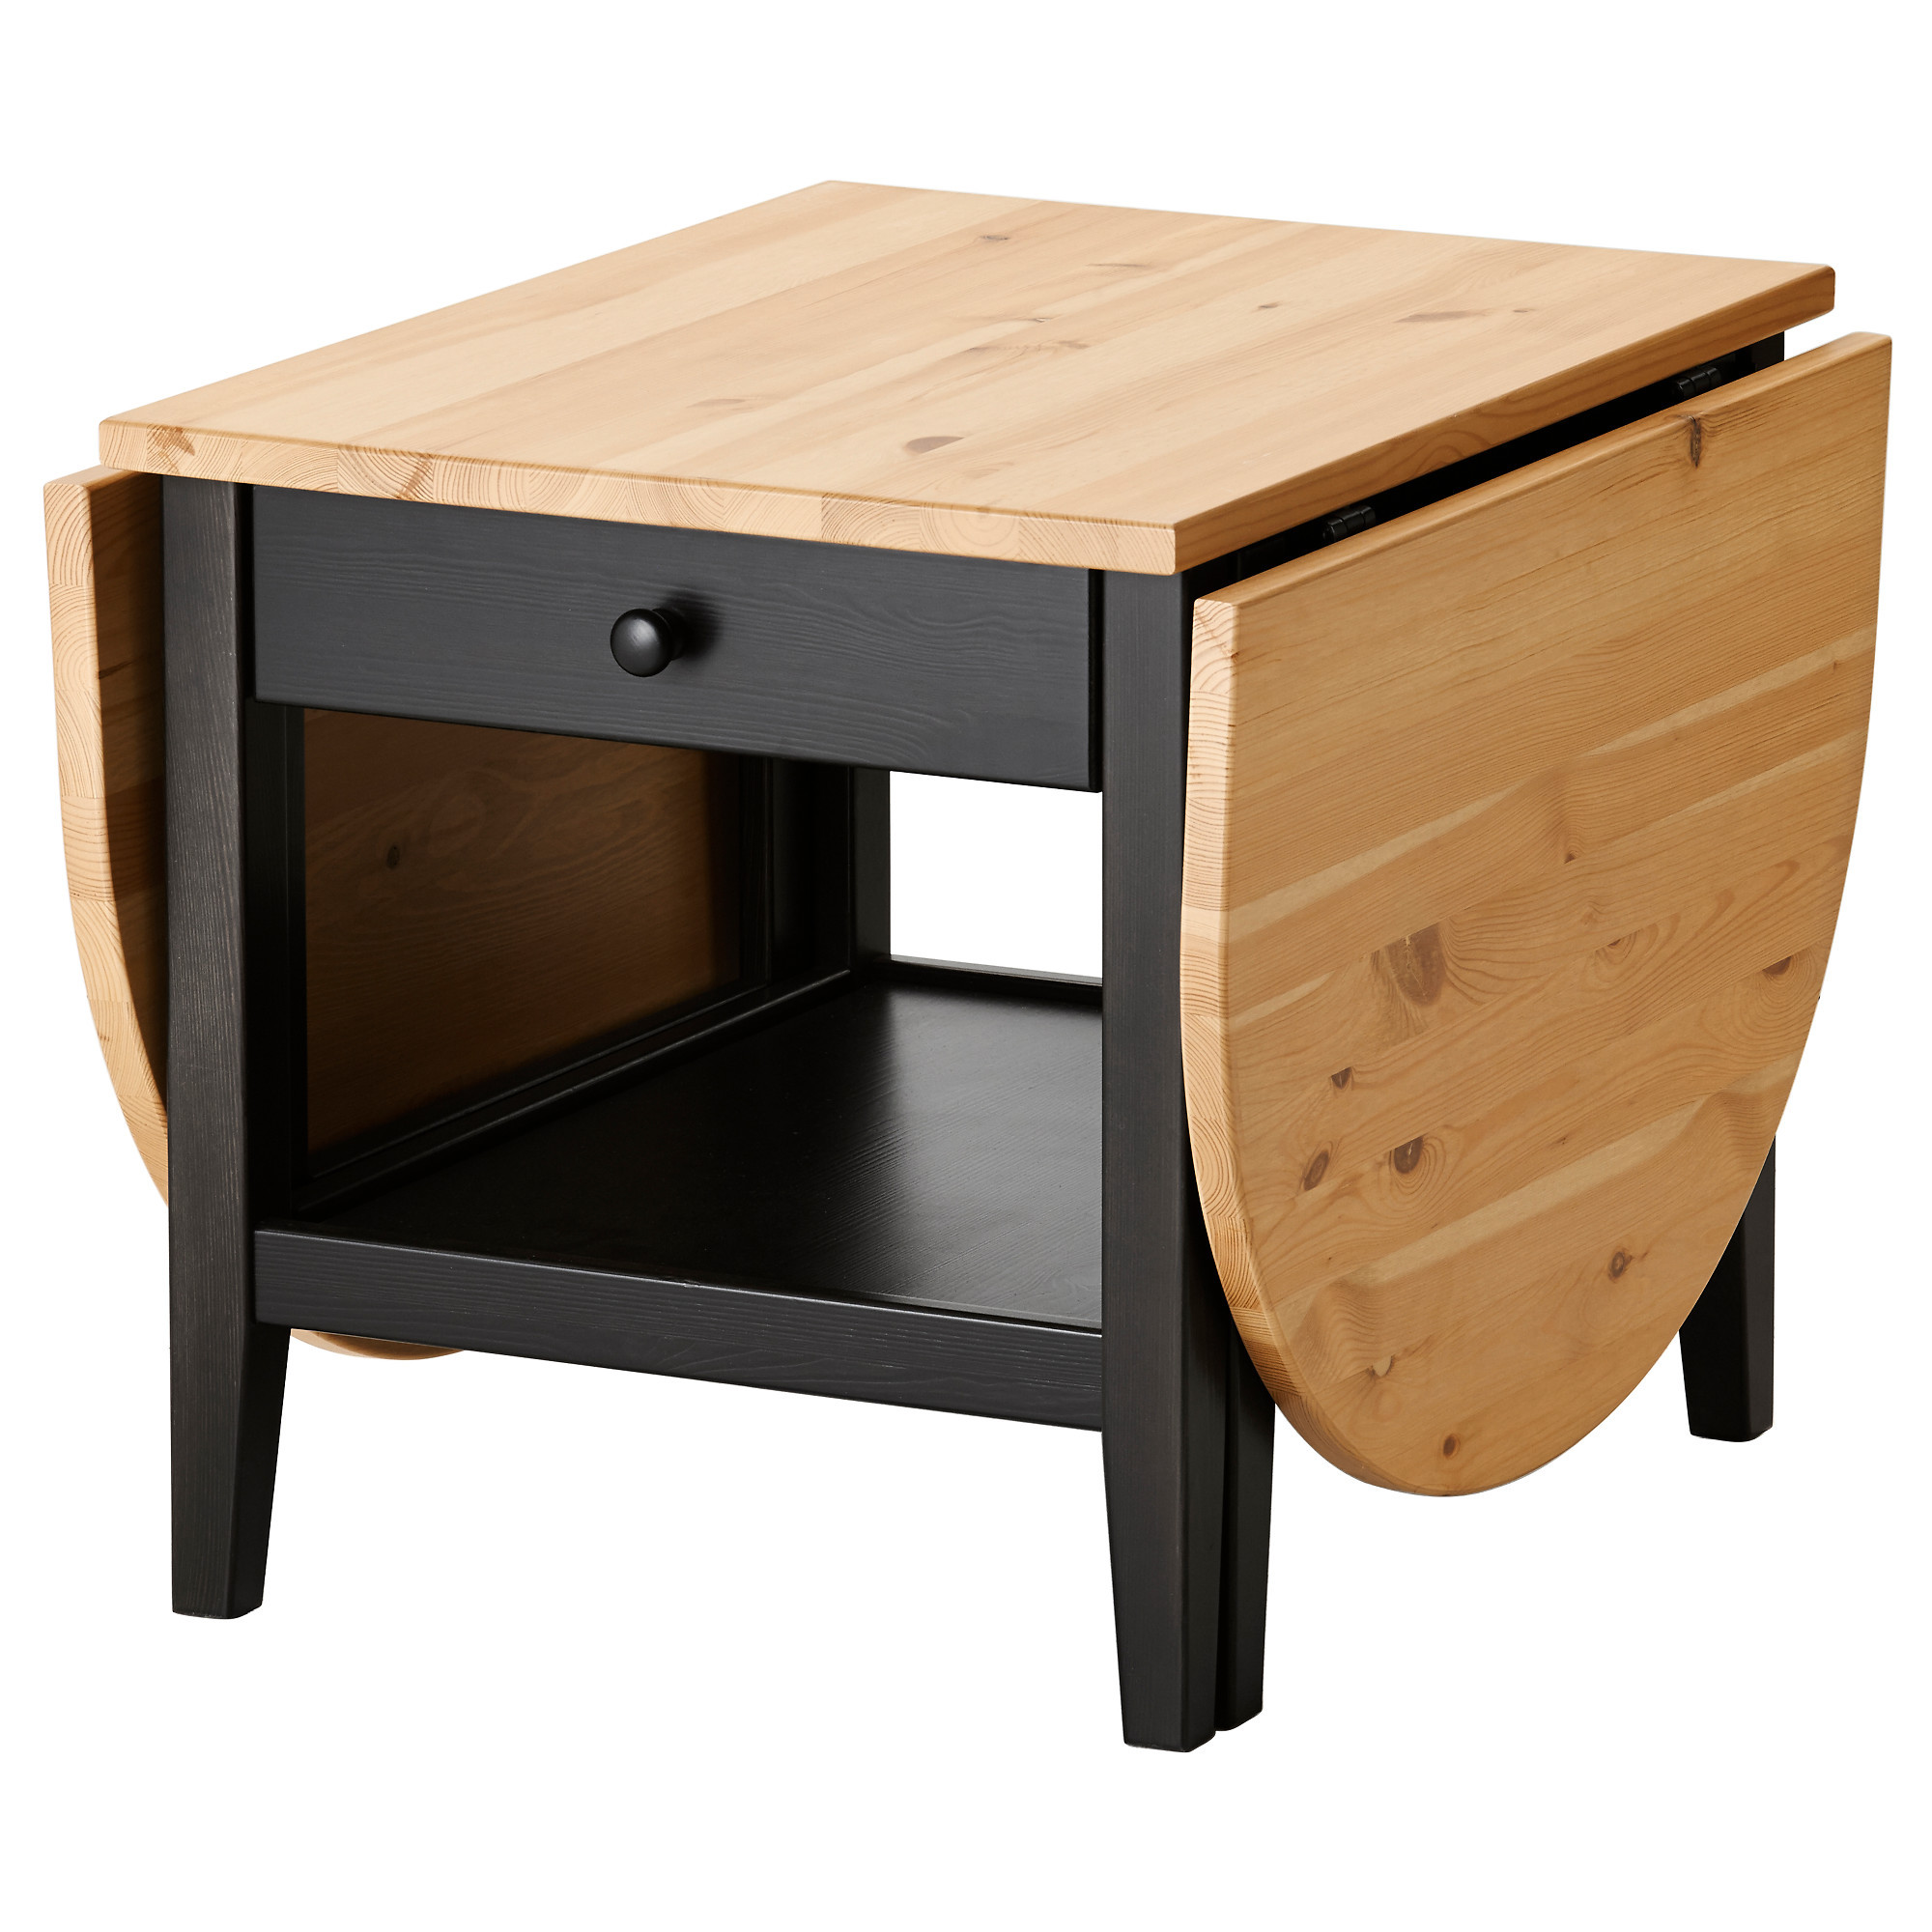 Ikea Wickelkommode Stuva Test ~ Table with Drawers Drop Leaf Tables for Small Spaces drop leaf table